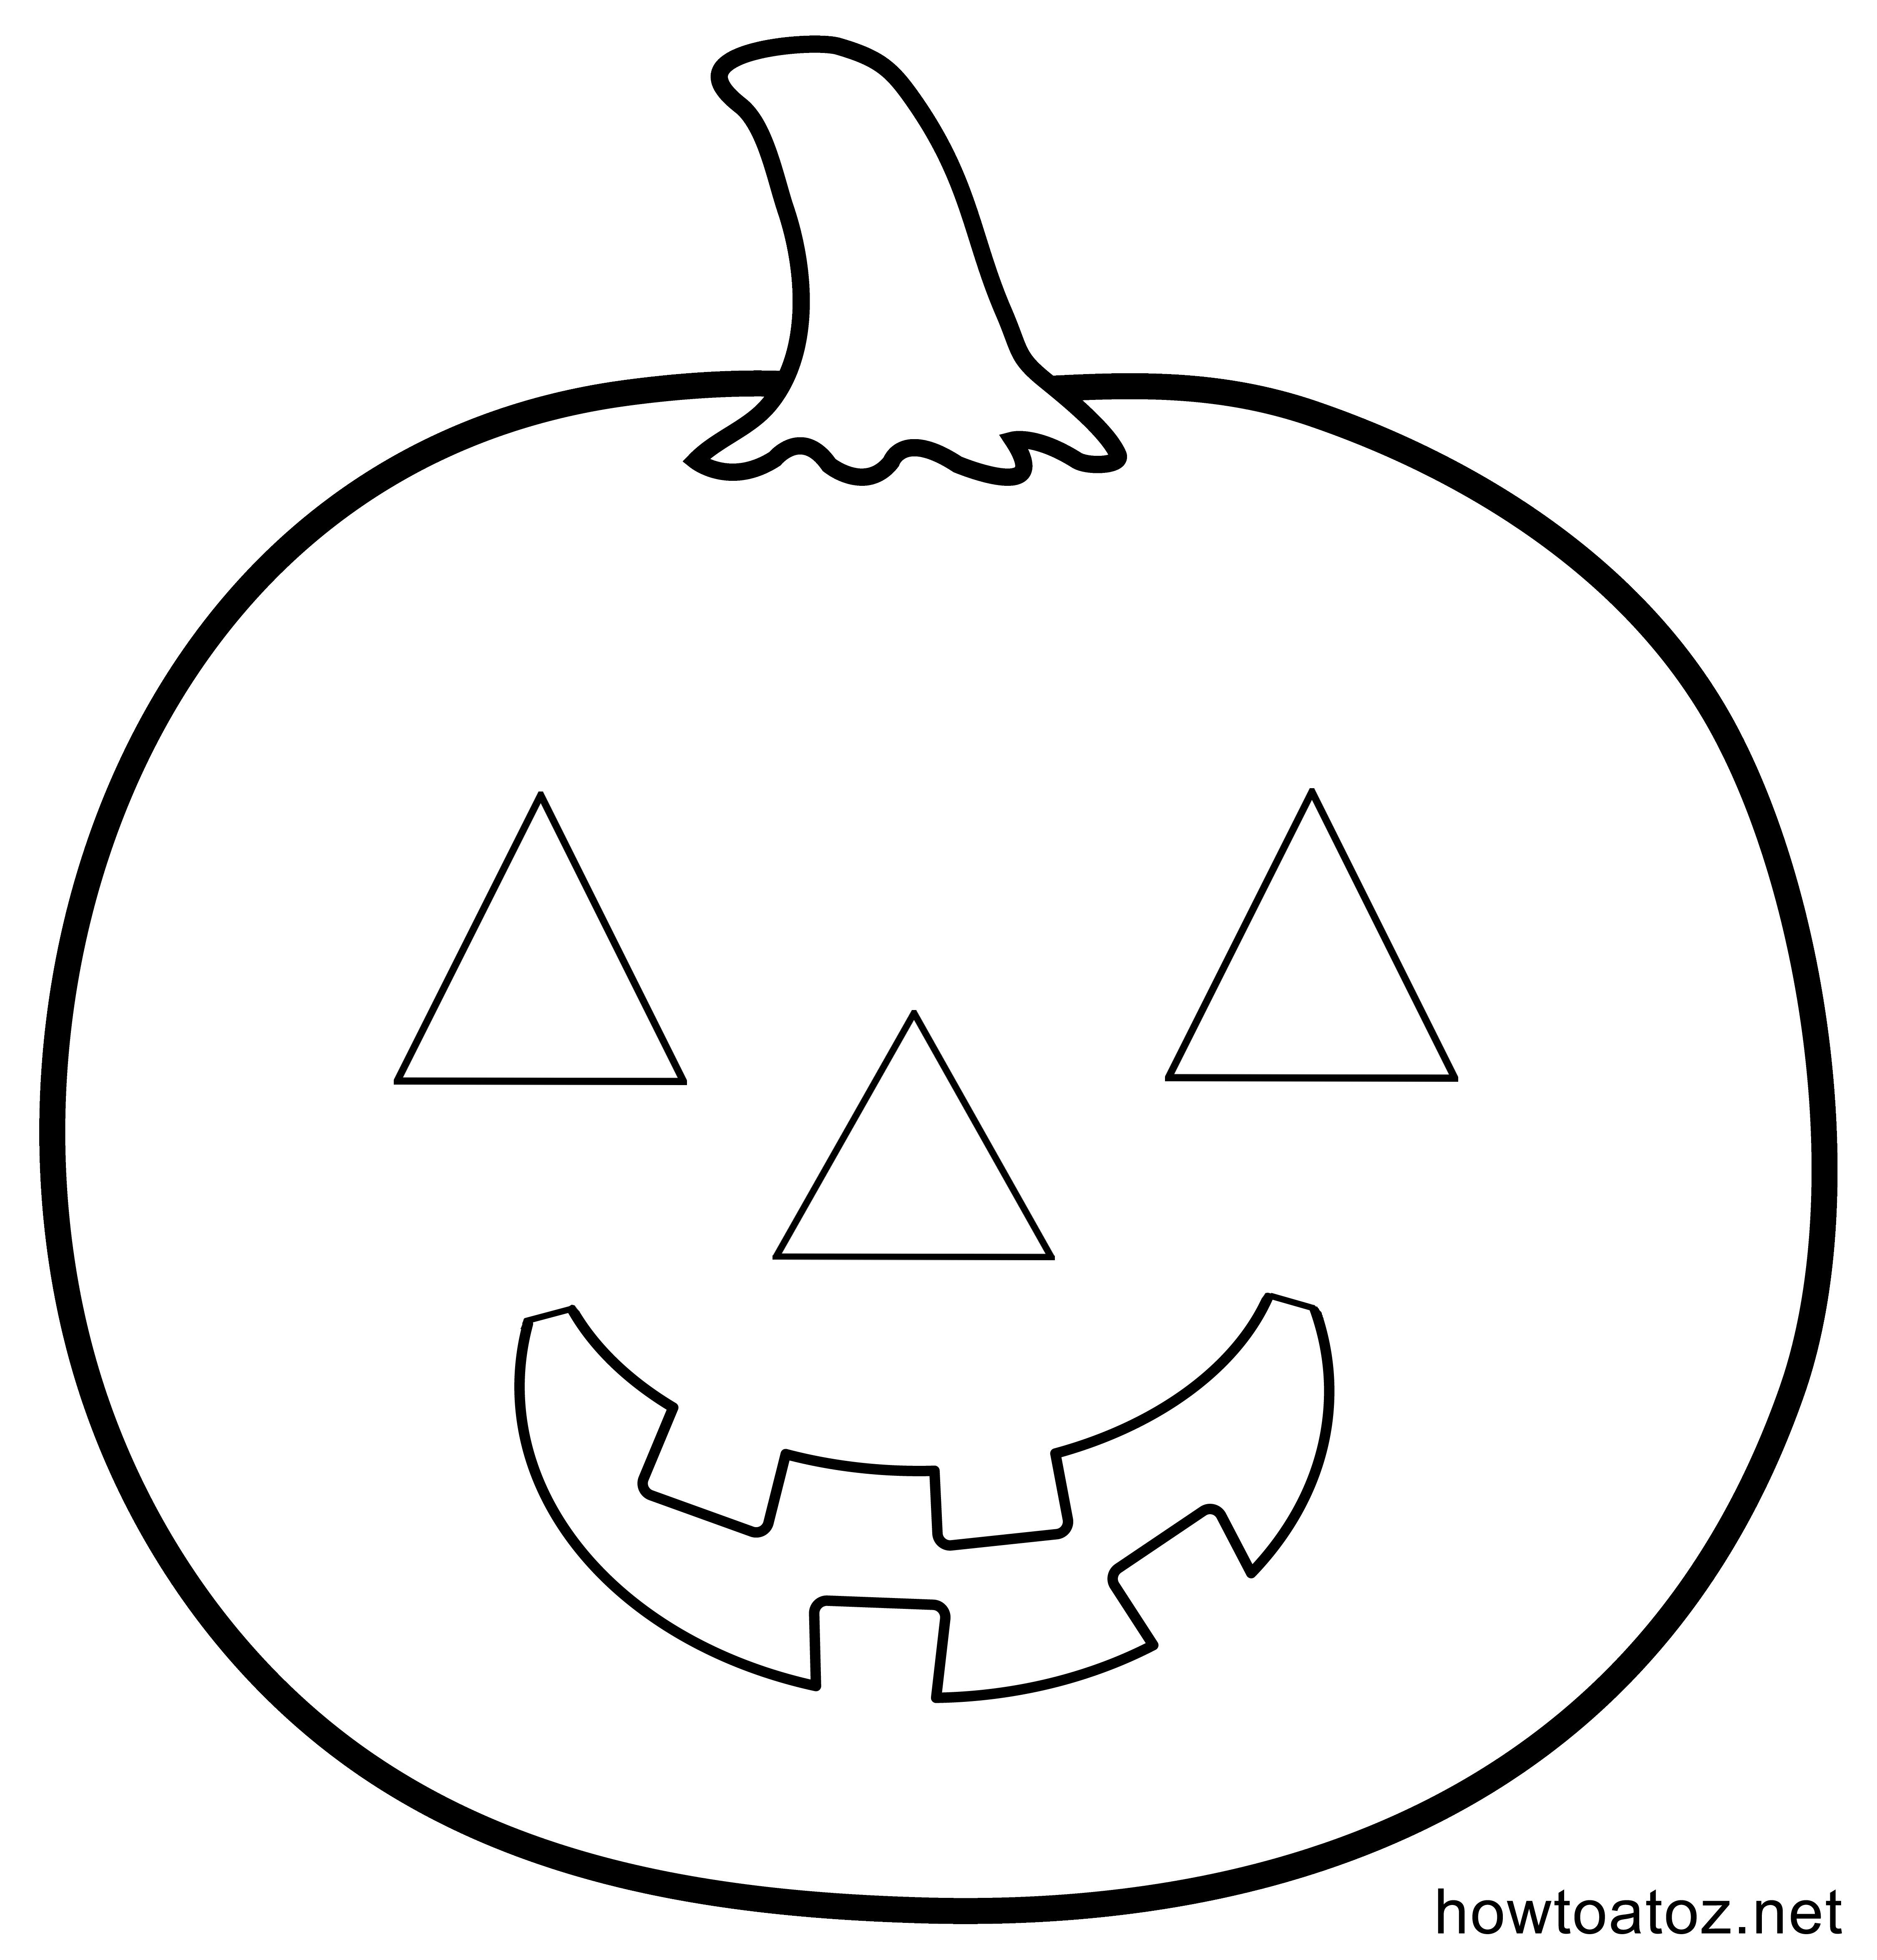 Free Halloween Decoration Stencils And Templates #